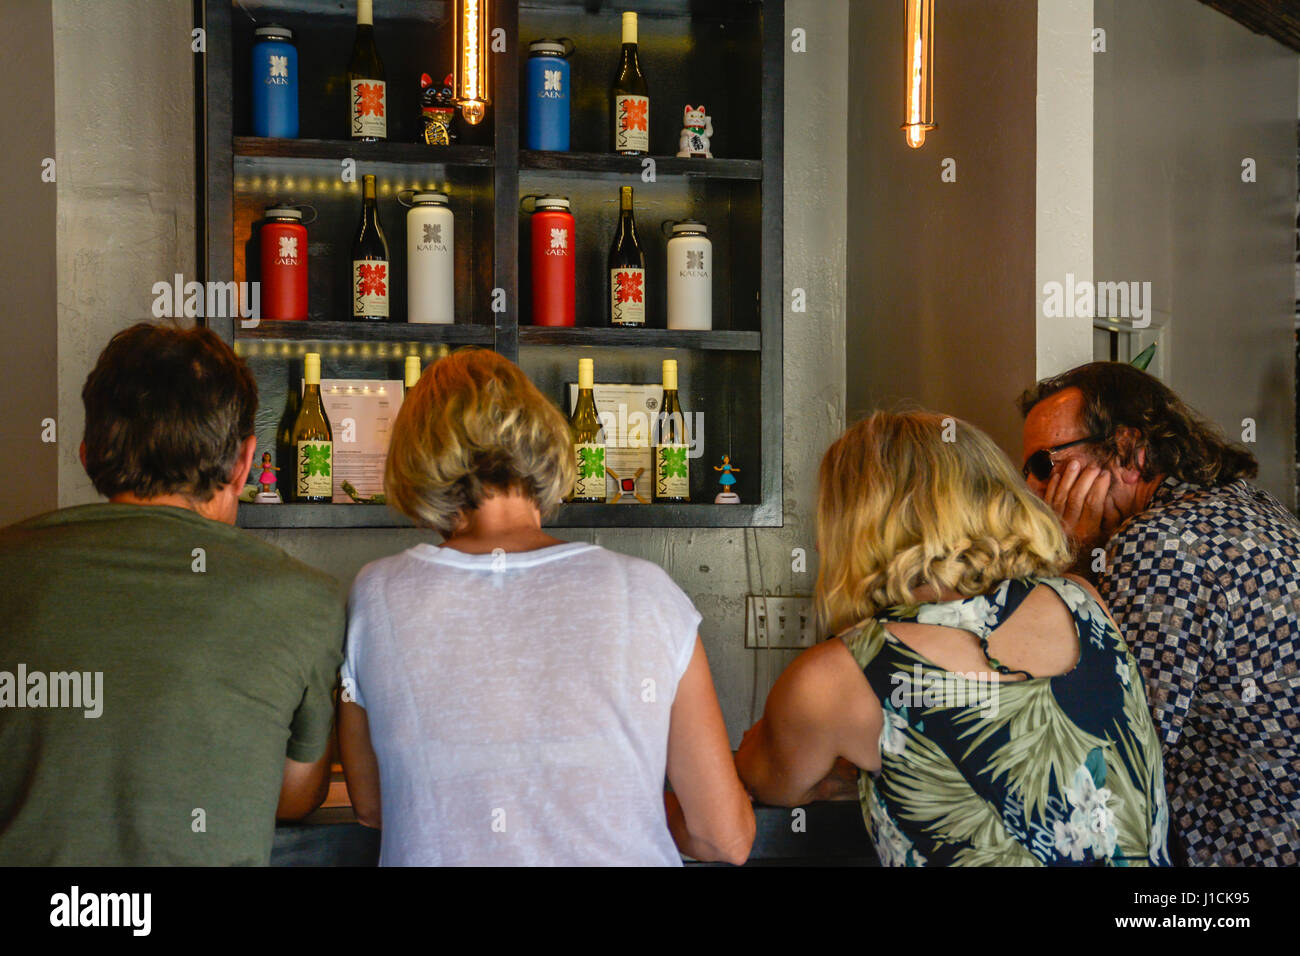 Shop Wine Wine Stockfotos & Shop Wine Wine Bilder - Seite 62 - Alamy